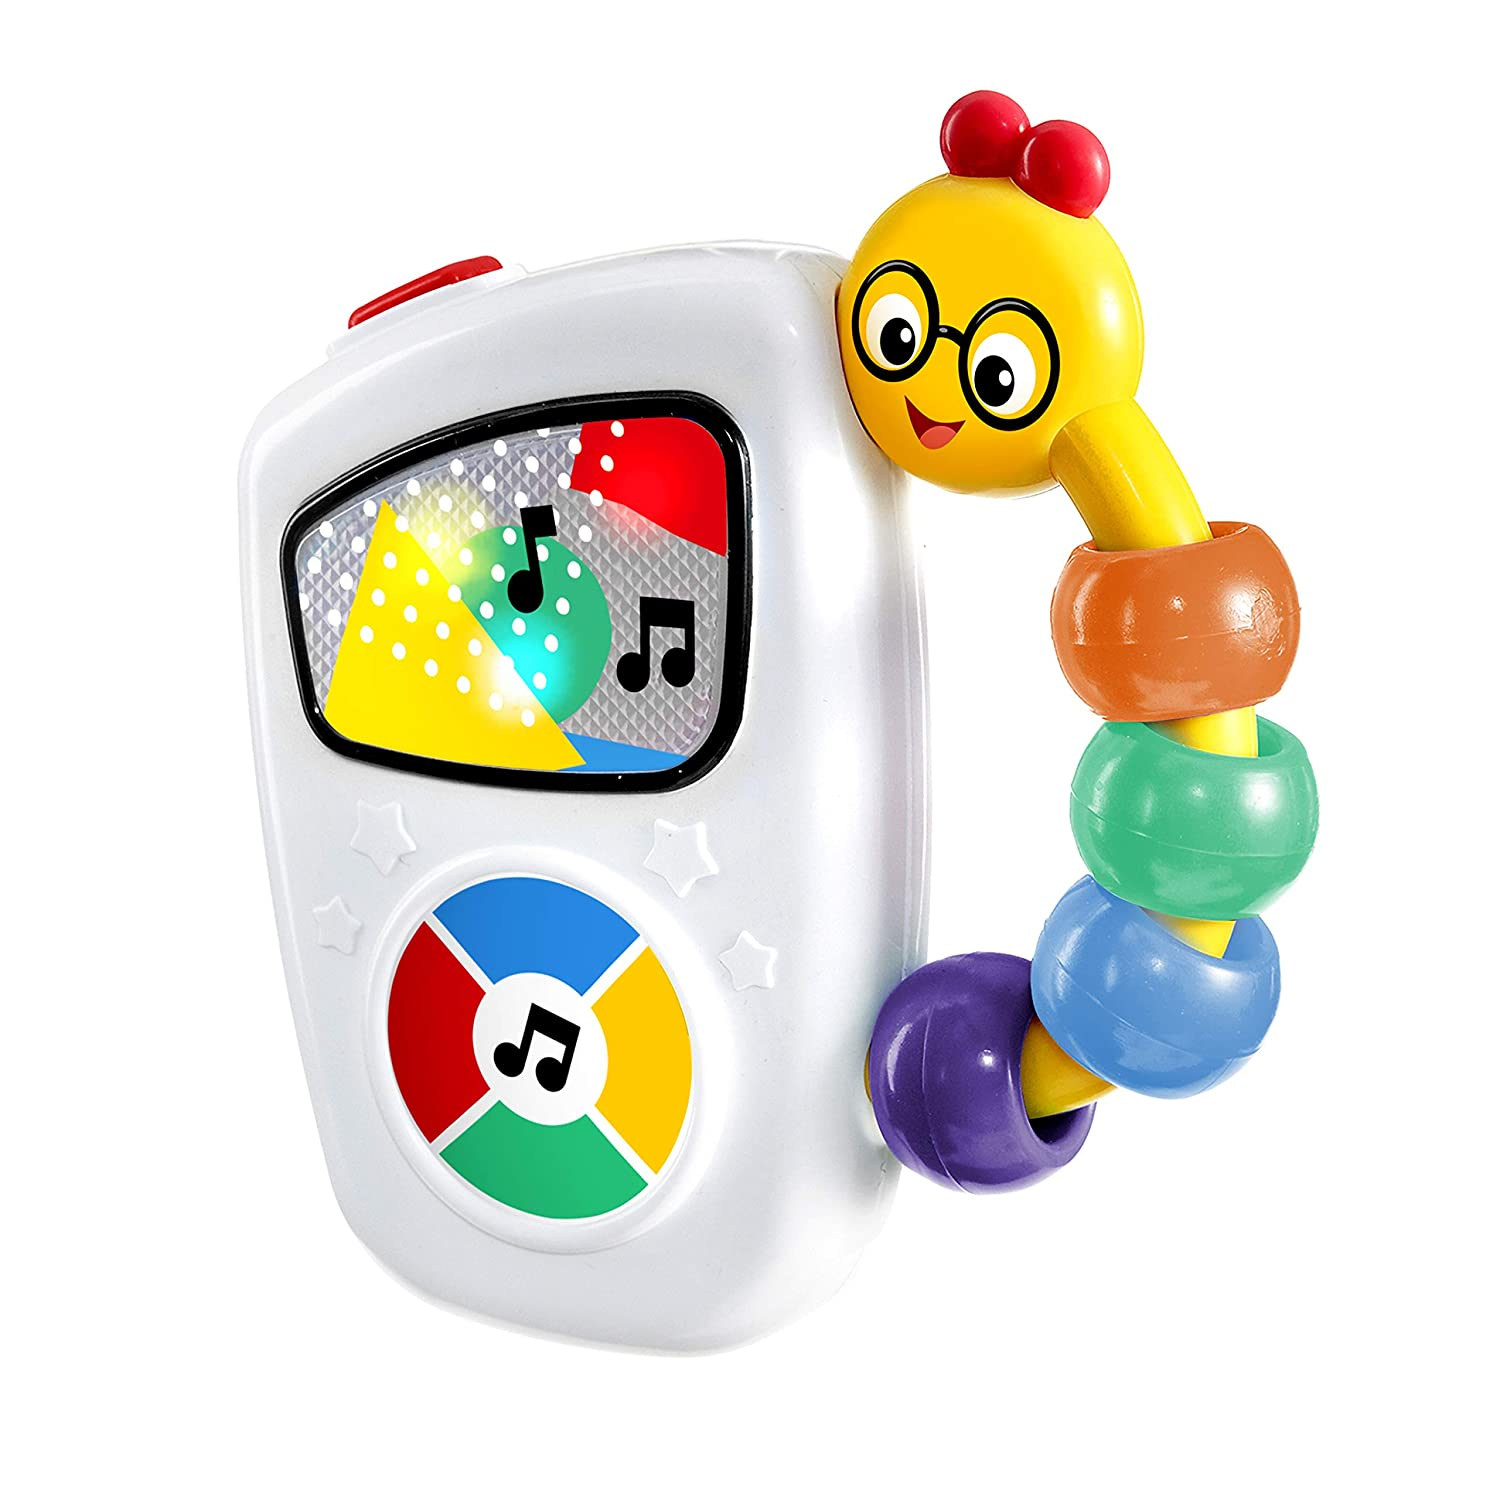 Top 11 Best Learning Toys For Babies (2020 Reviews & Buying Guide) 3